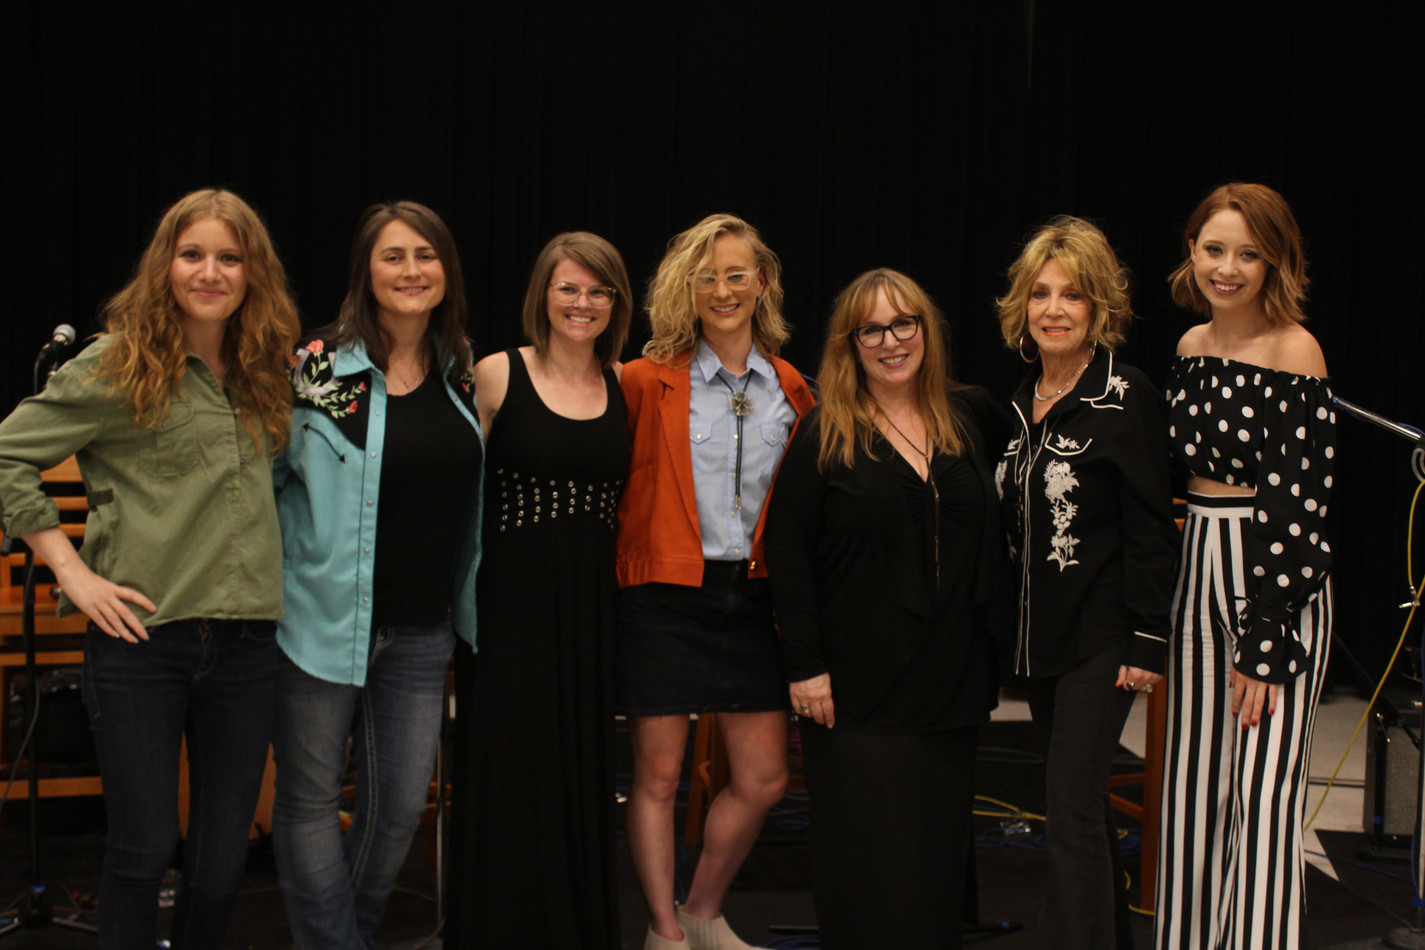 Alex Kline, Erin Enderlin, Jada Watson, Jewly Hight, Gretchen Peters, Jeannie Seely, Kalie Shorr panel Columbia A Studio